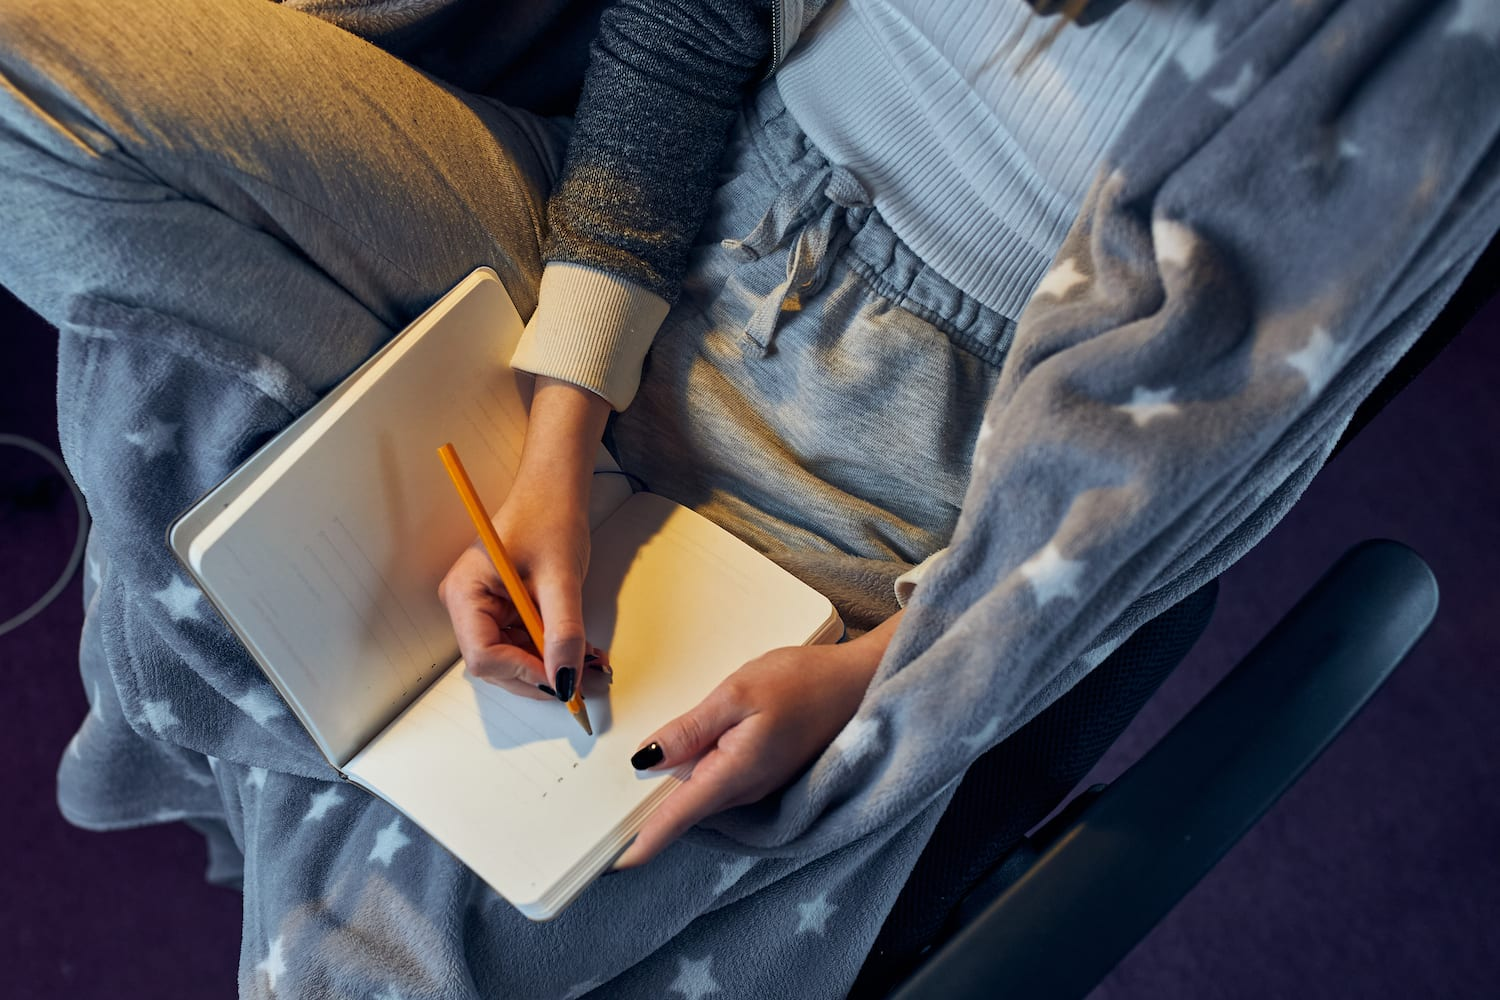 Woman writing in dream journal